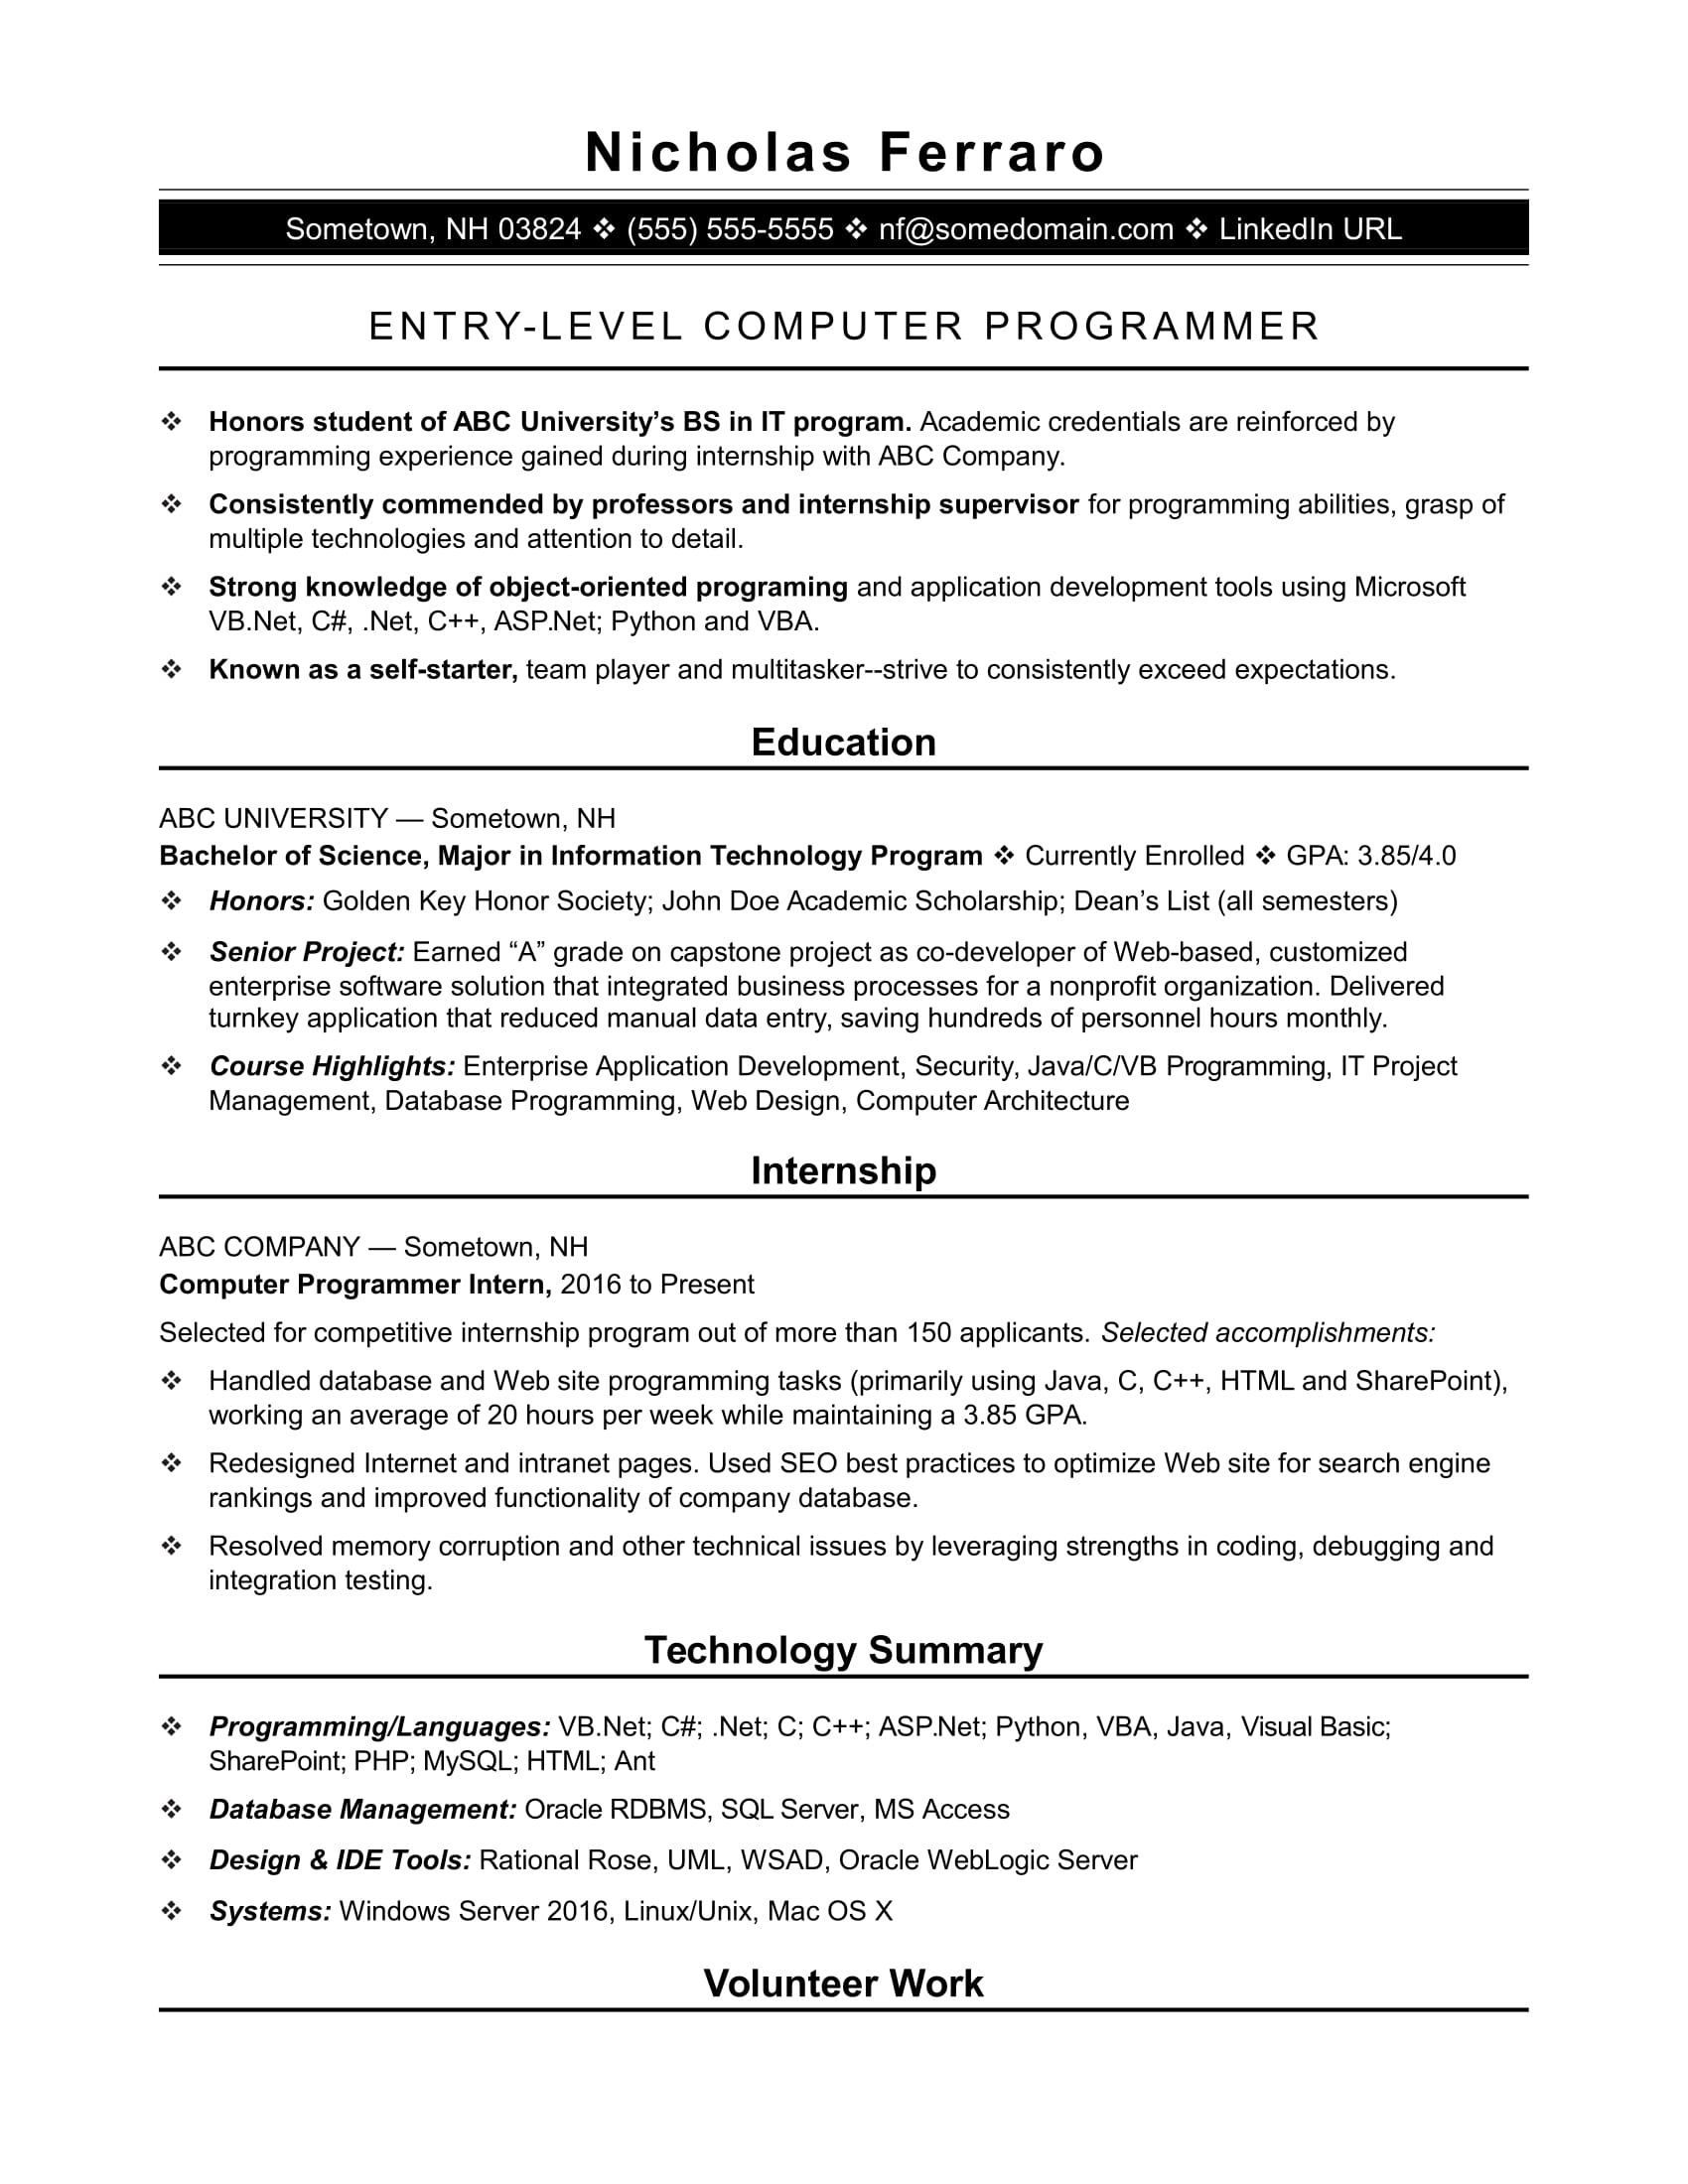 sample resume for an entry level computer programmer - Programmer Resume Example